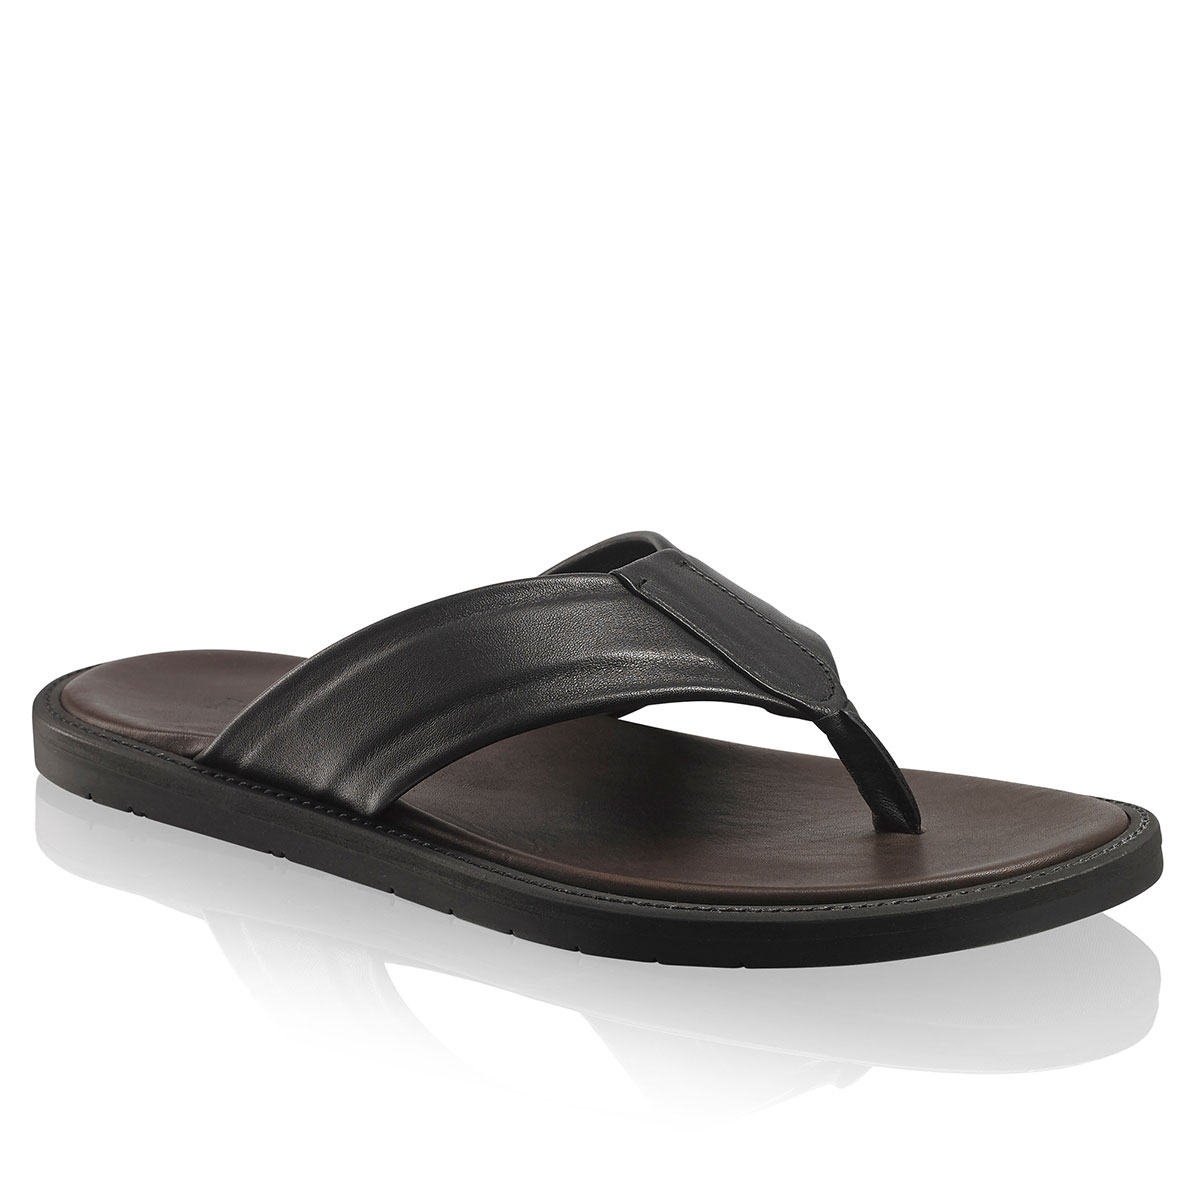 Russell and Bromley ADONIS Toe-Post Sandal